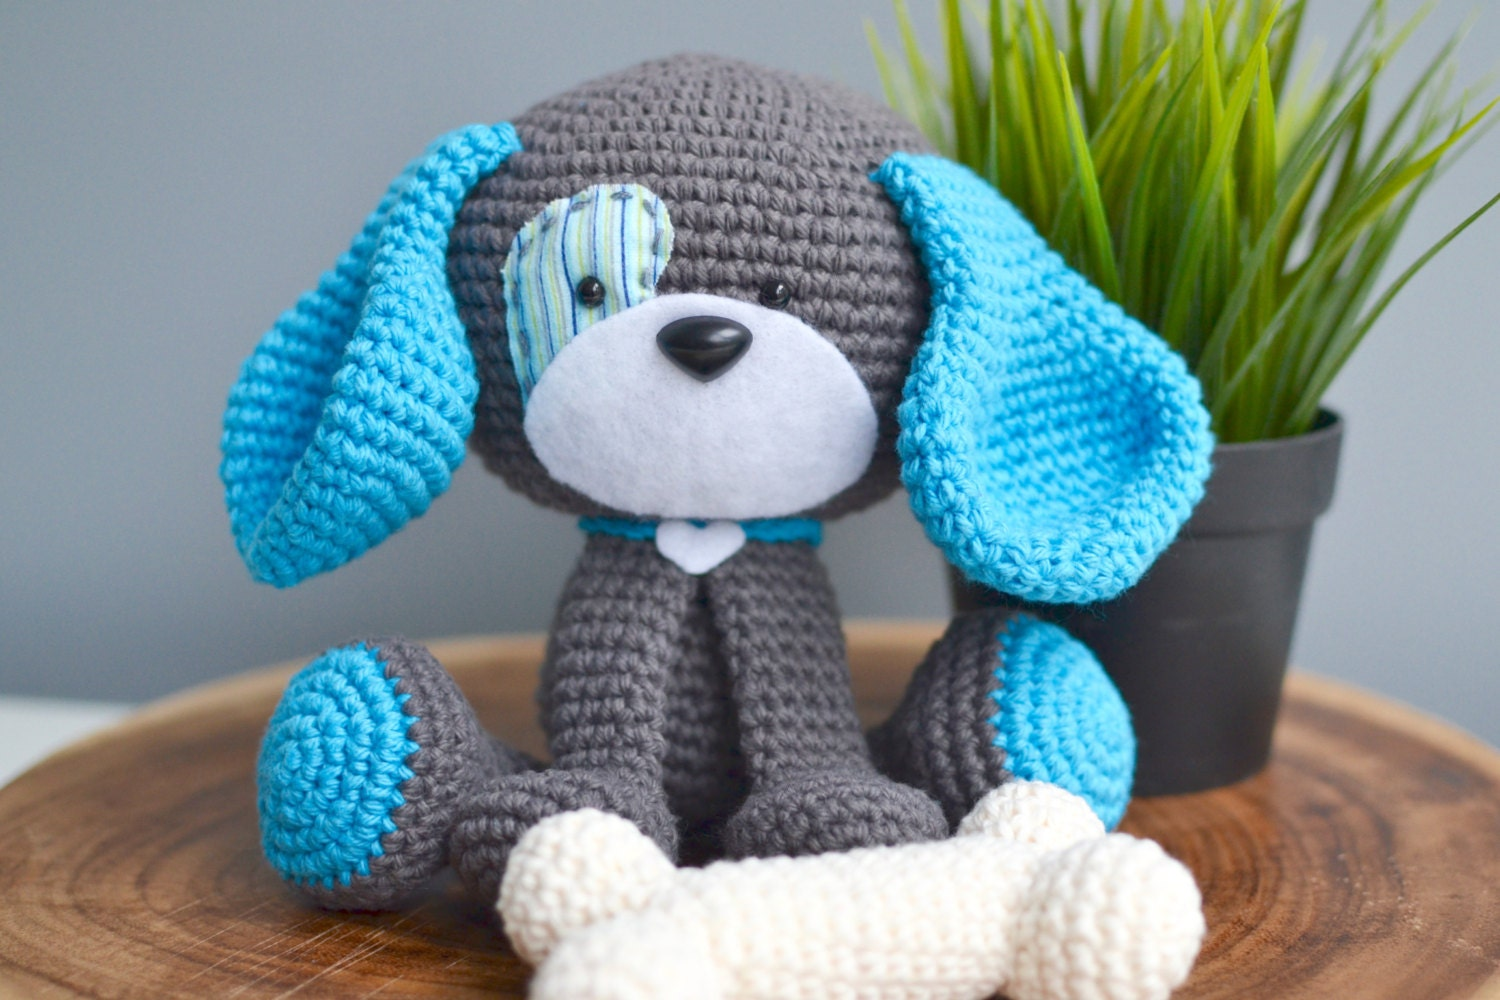 Crochet Patterns Pets : Cute Dog Crochet Pattern. Domino The Dog Amigurumi Crochet